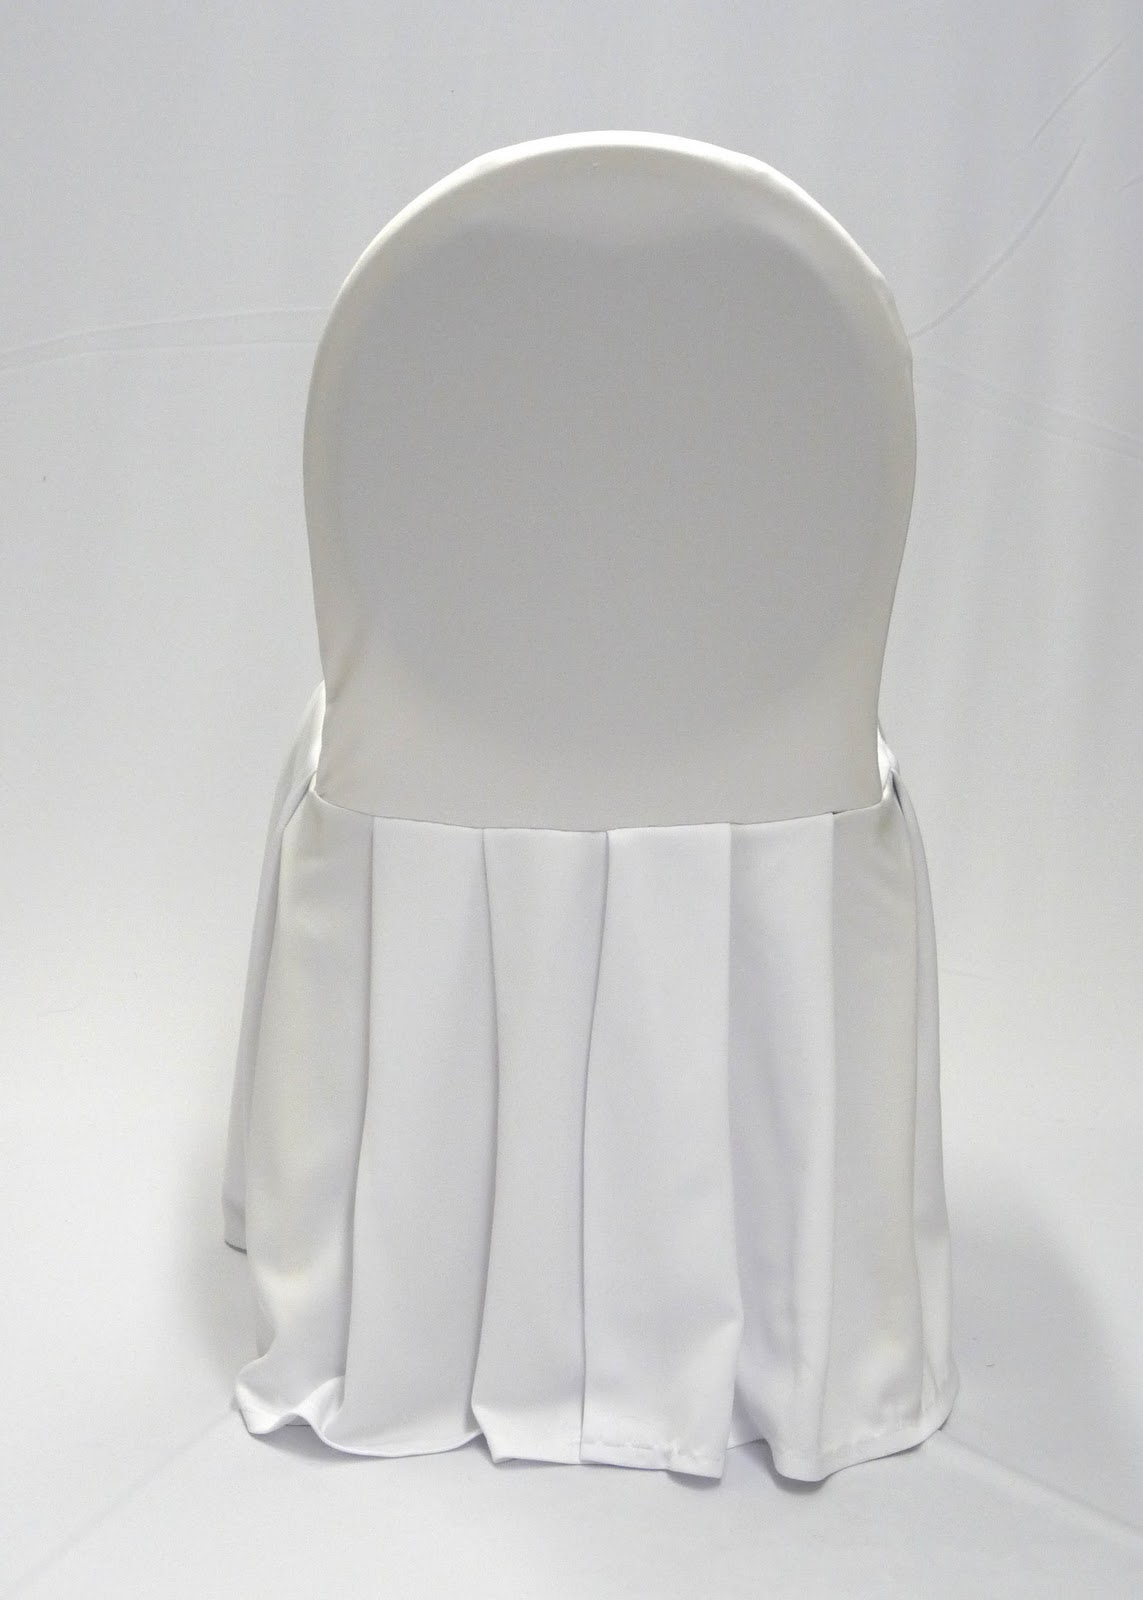 Chair Covers Rental Scarborough Cheap Ivory Decor Rent Toronto Cover